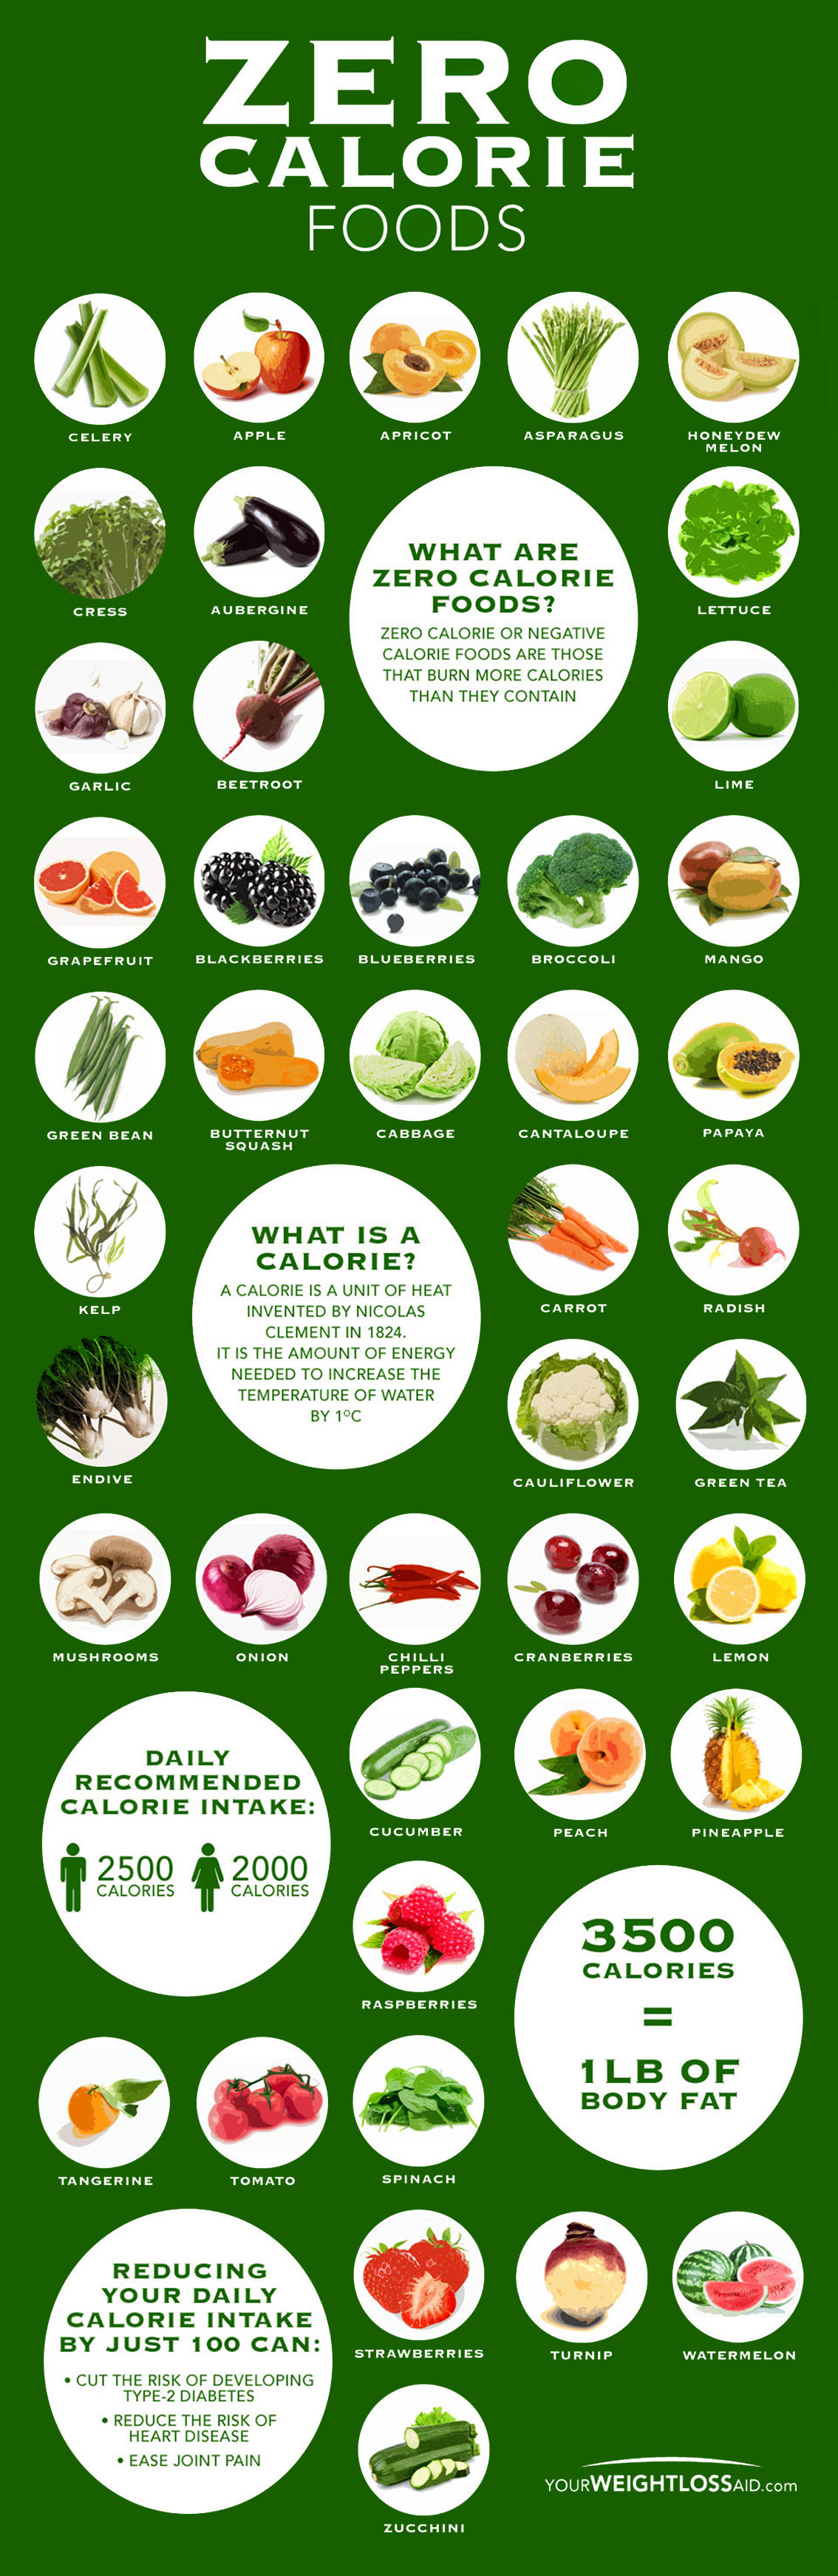 Zero Calorie Foods That Will Help You Lose Weight Fast